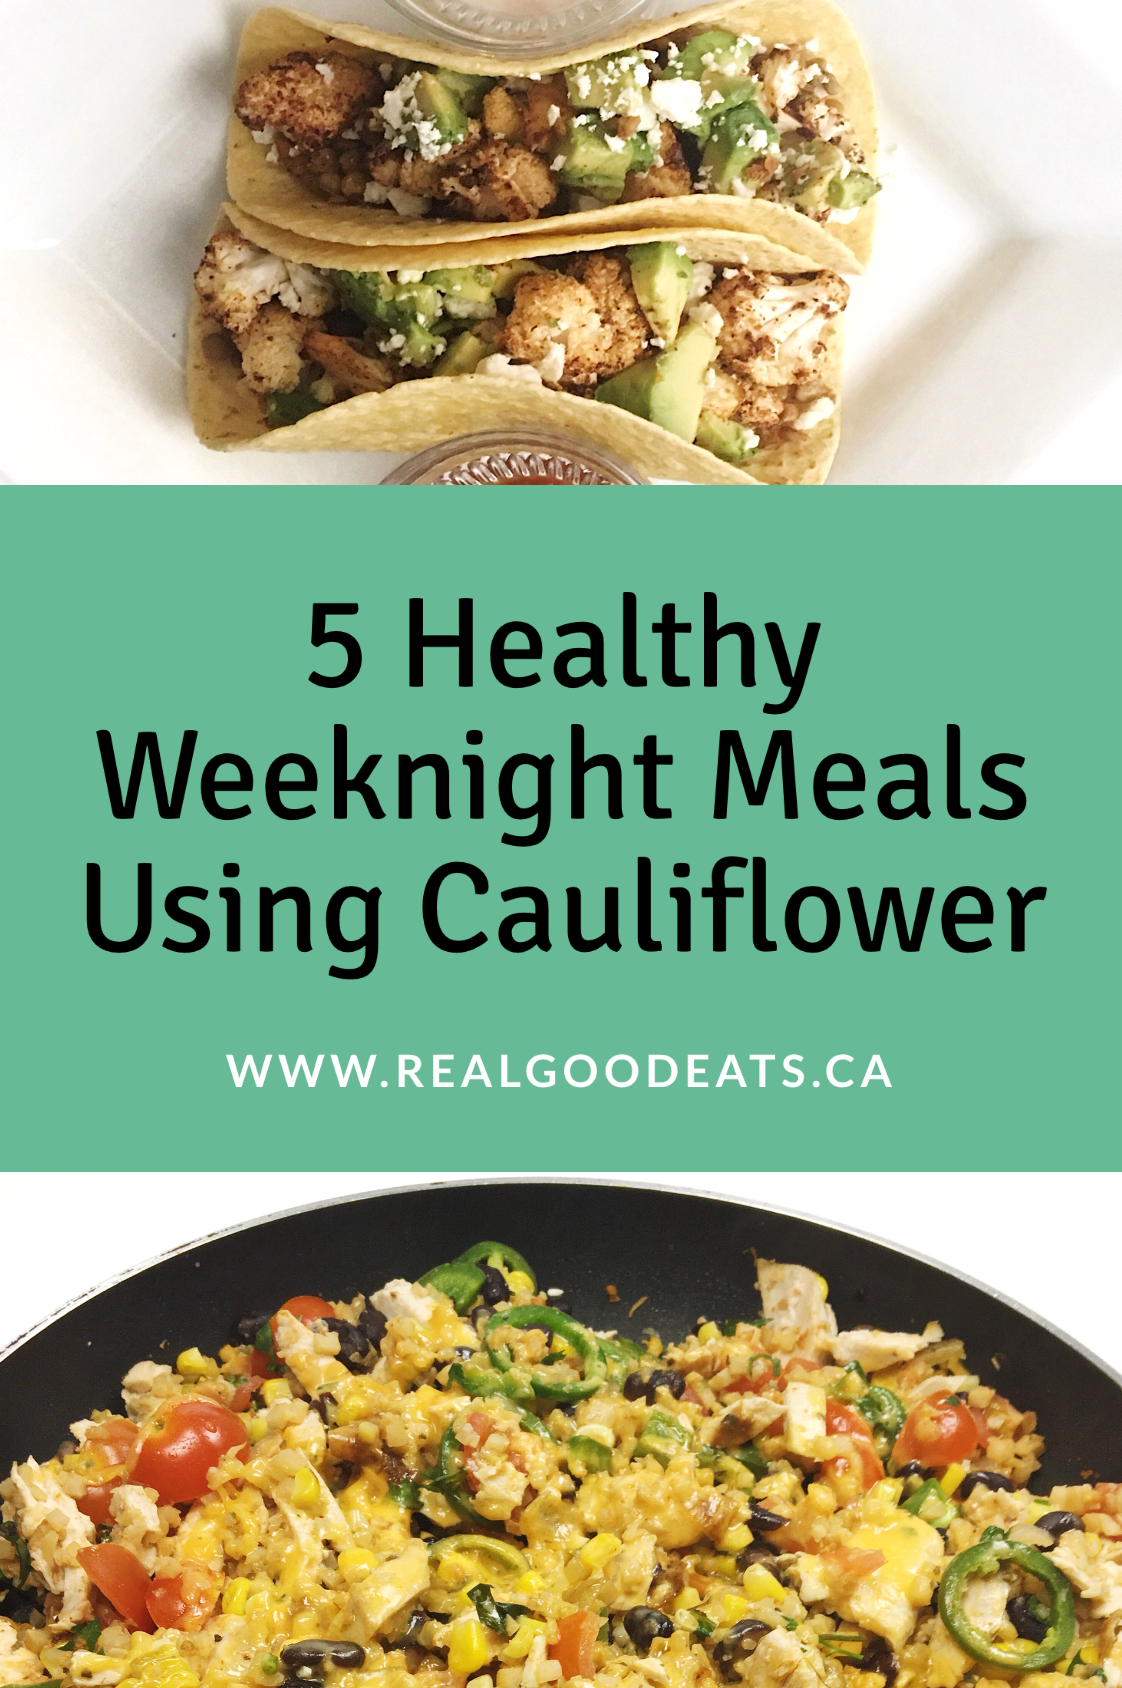 5 healthy weeknight meals using cauliflower